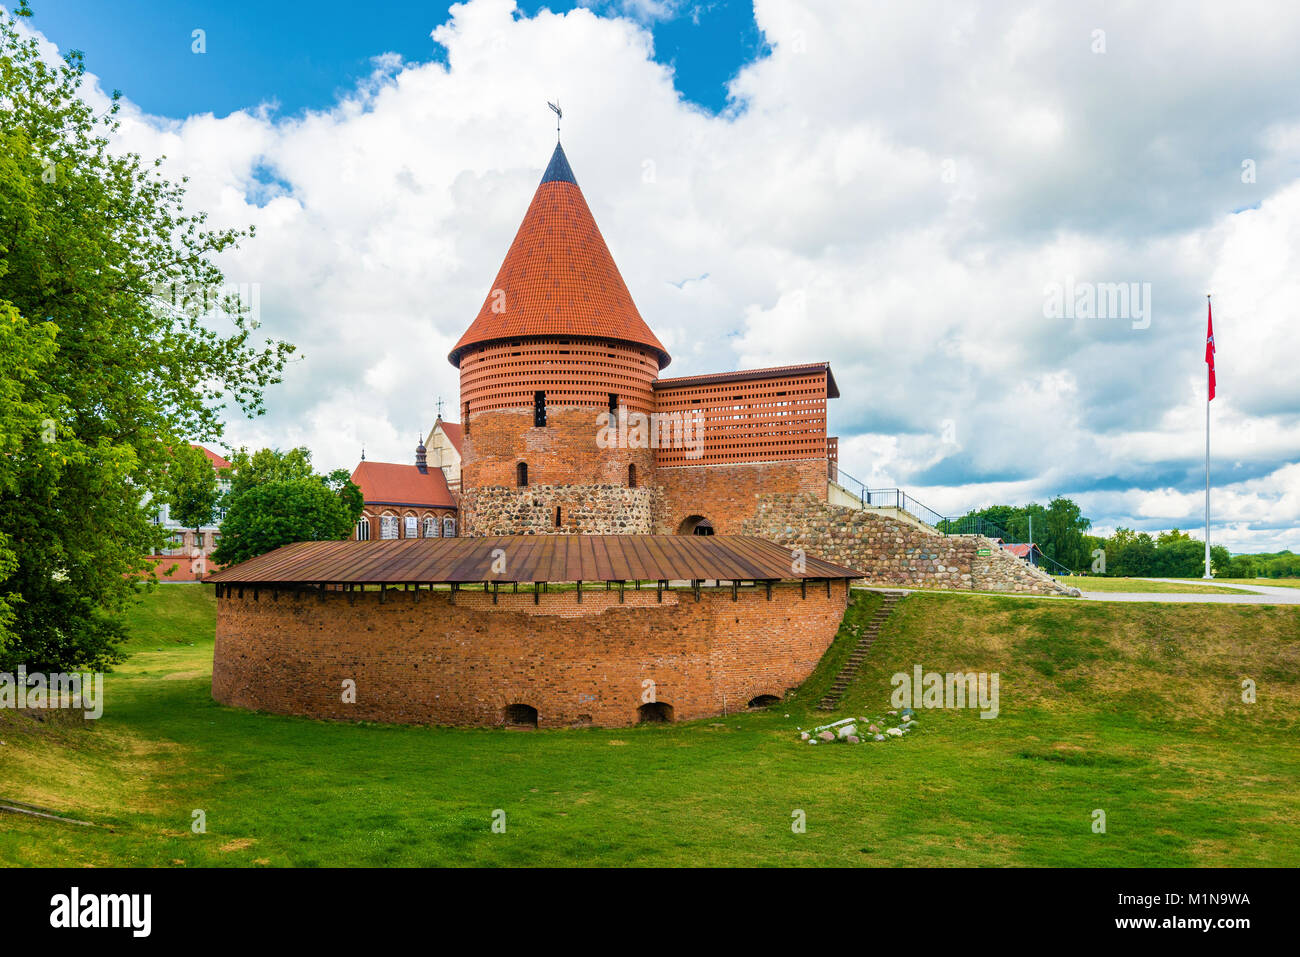 Kaunas Castle Wide Angle View - Stock Image